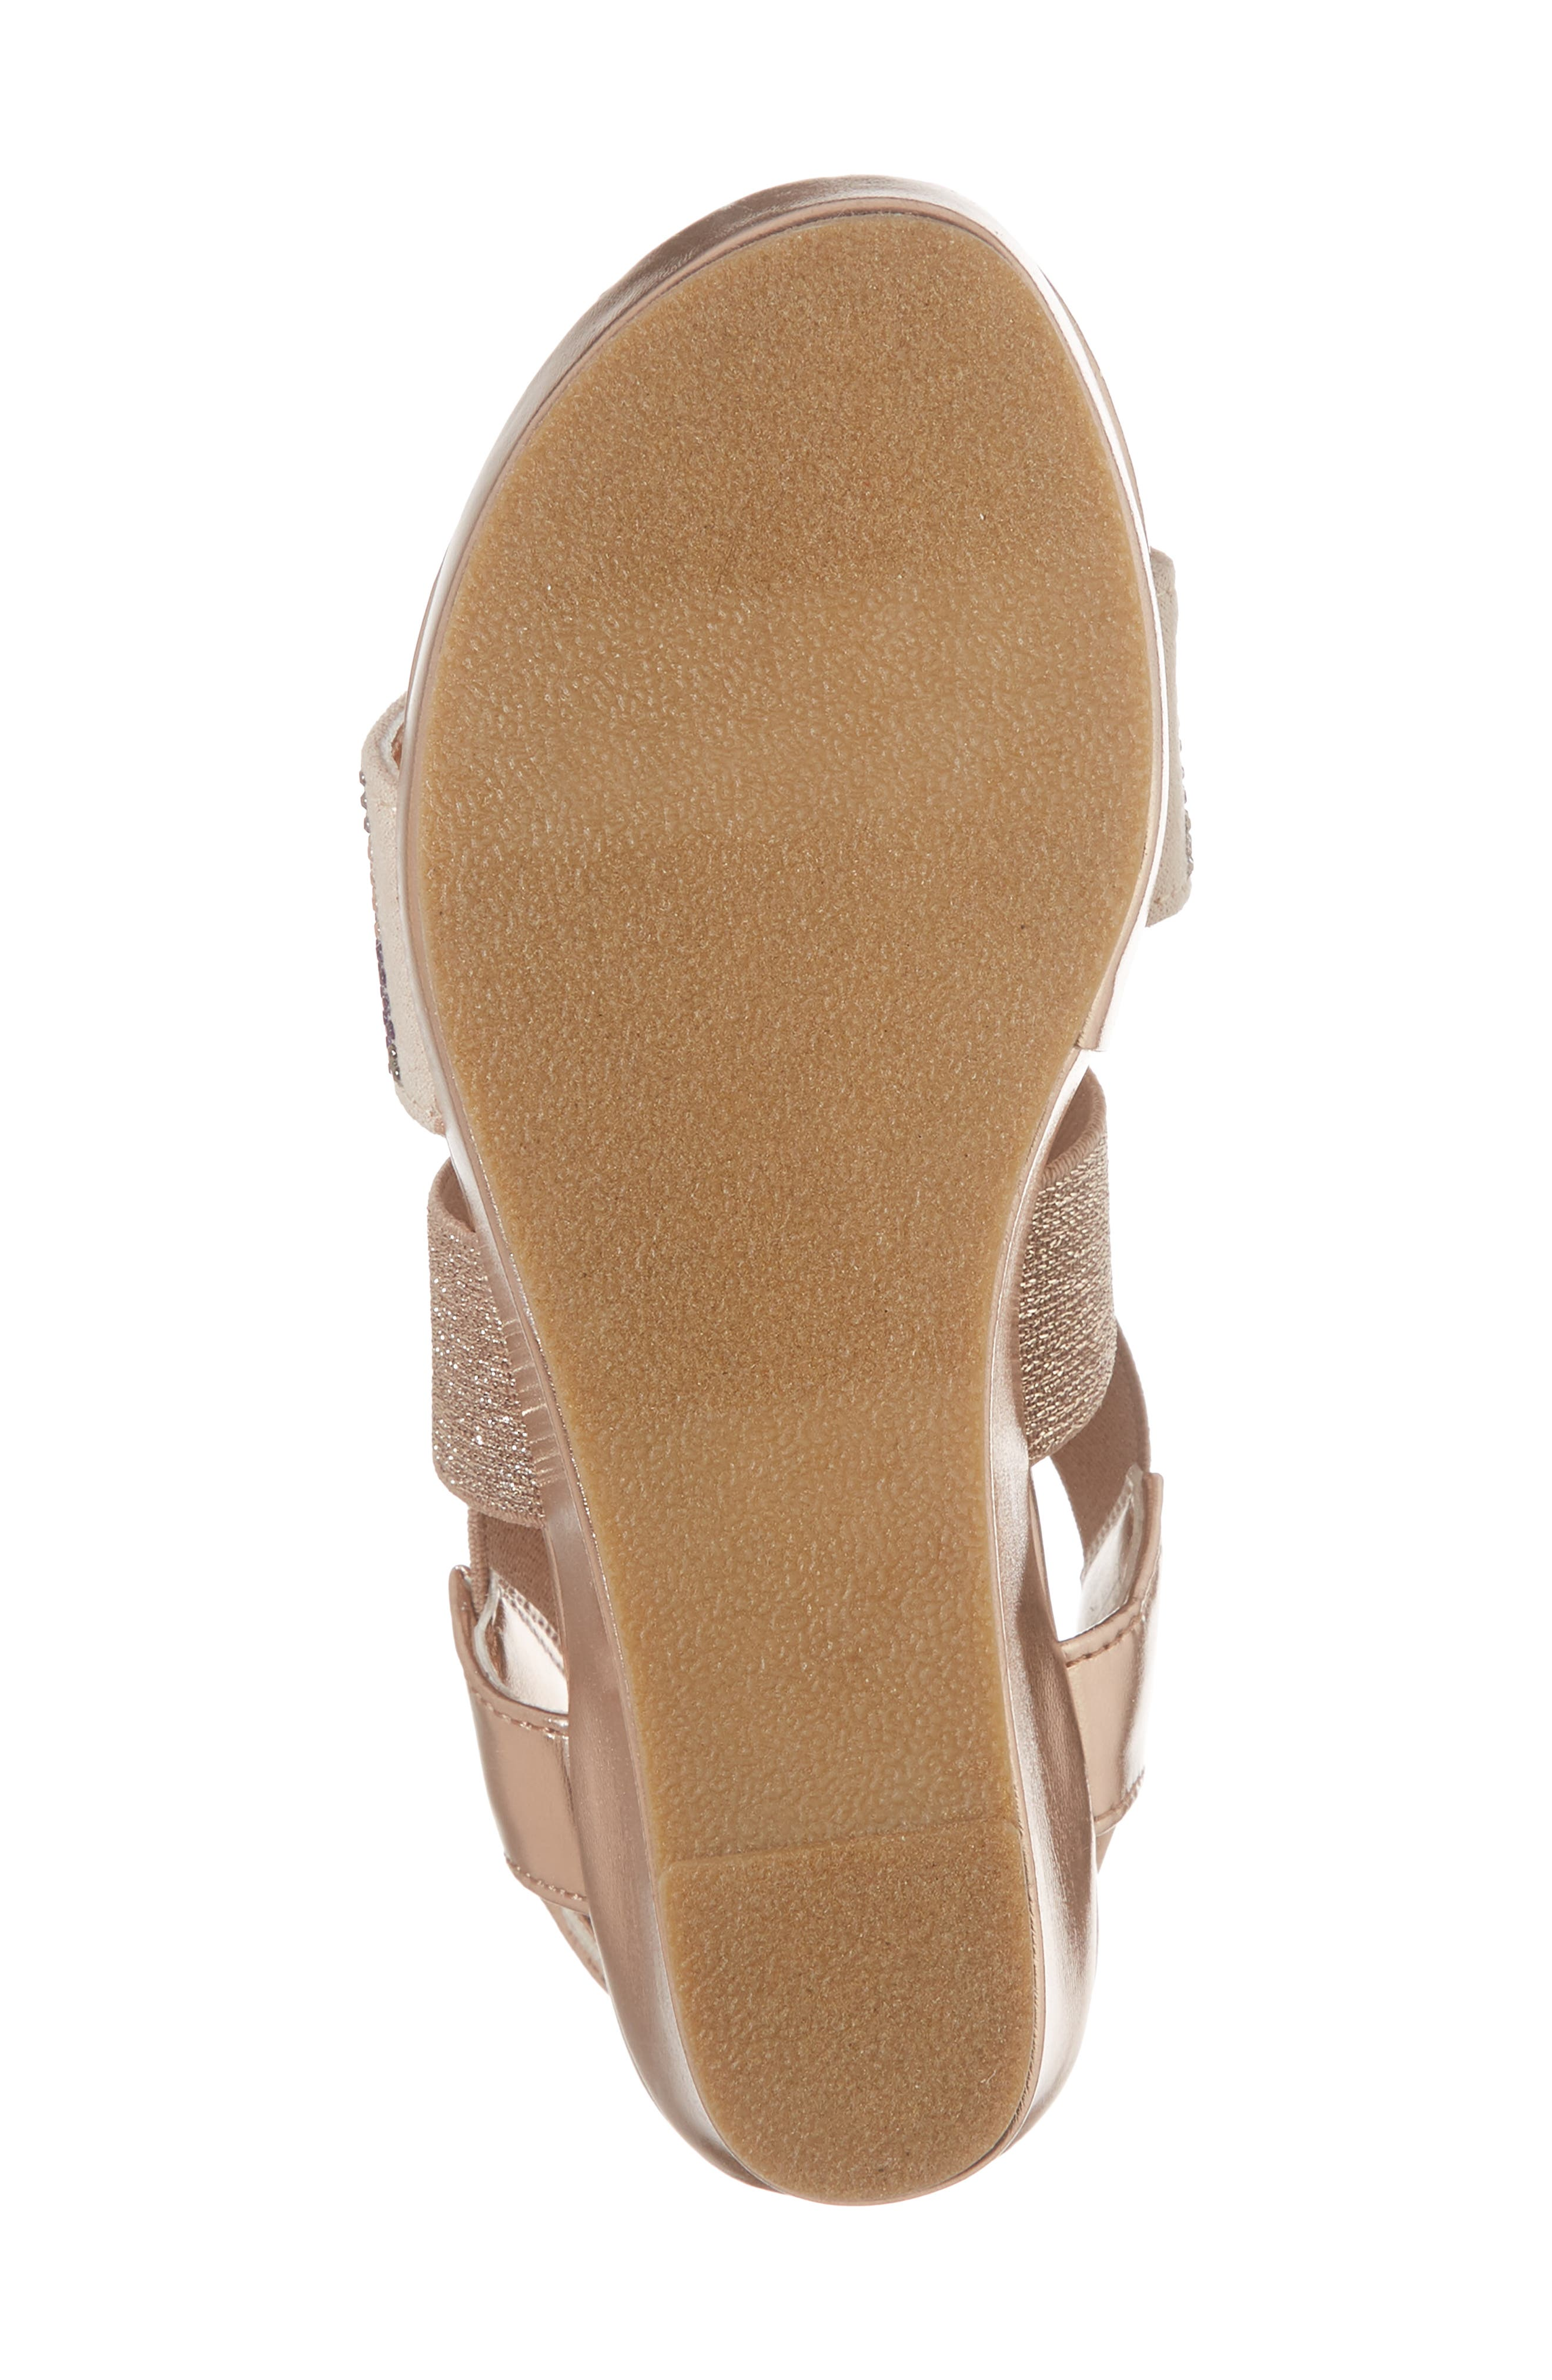 Reaction Kenneth Cole Reed Mamba Embellished Wedge Sandal,                             Alternate thumbnail 6, color,                             Rose Metallic